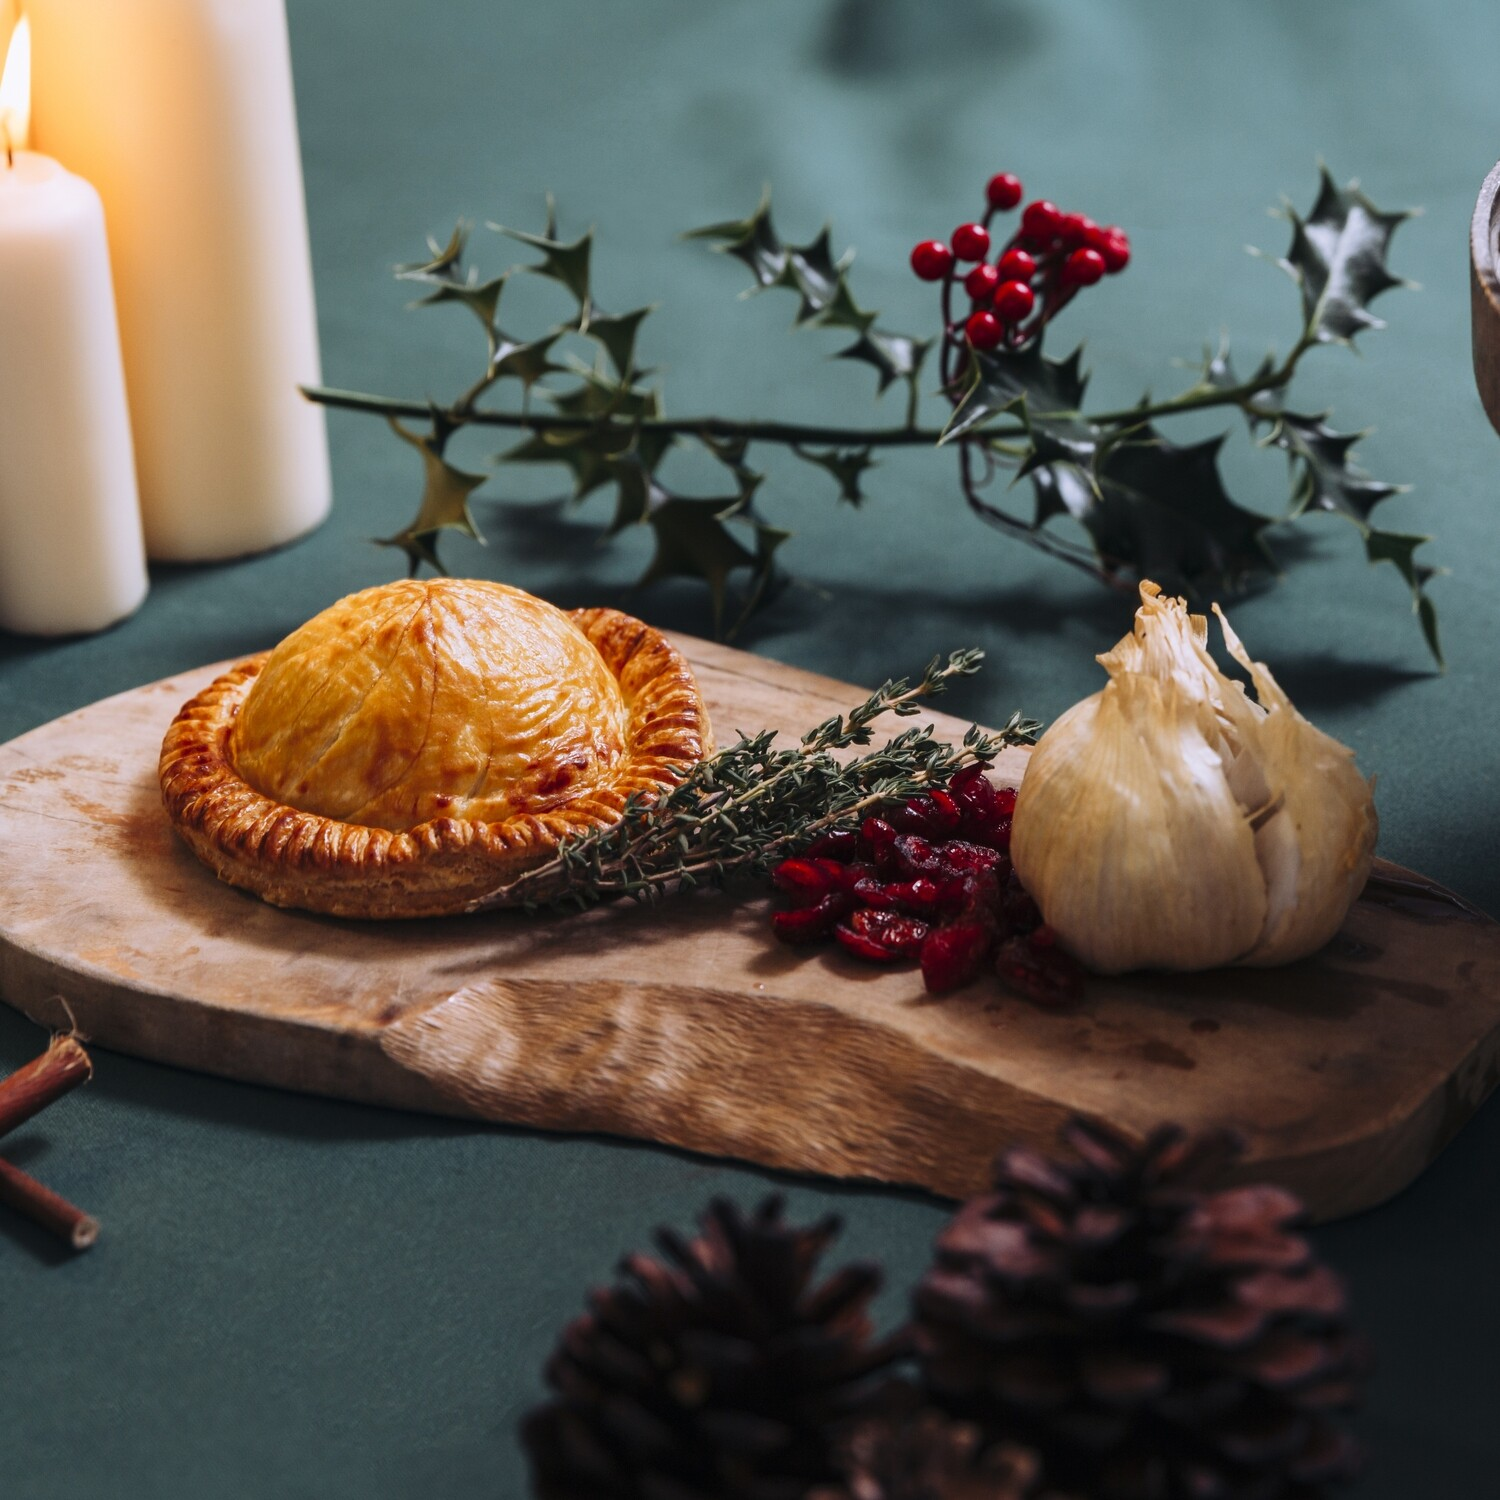 Hampshire Tunworth Soft Cheese, Caramelized Shallot and Cranberry Pithivier | Main